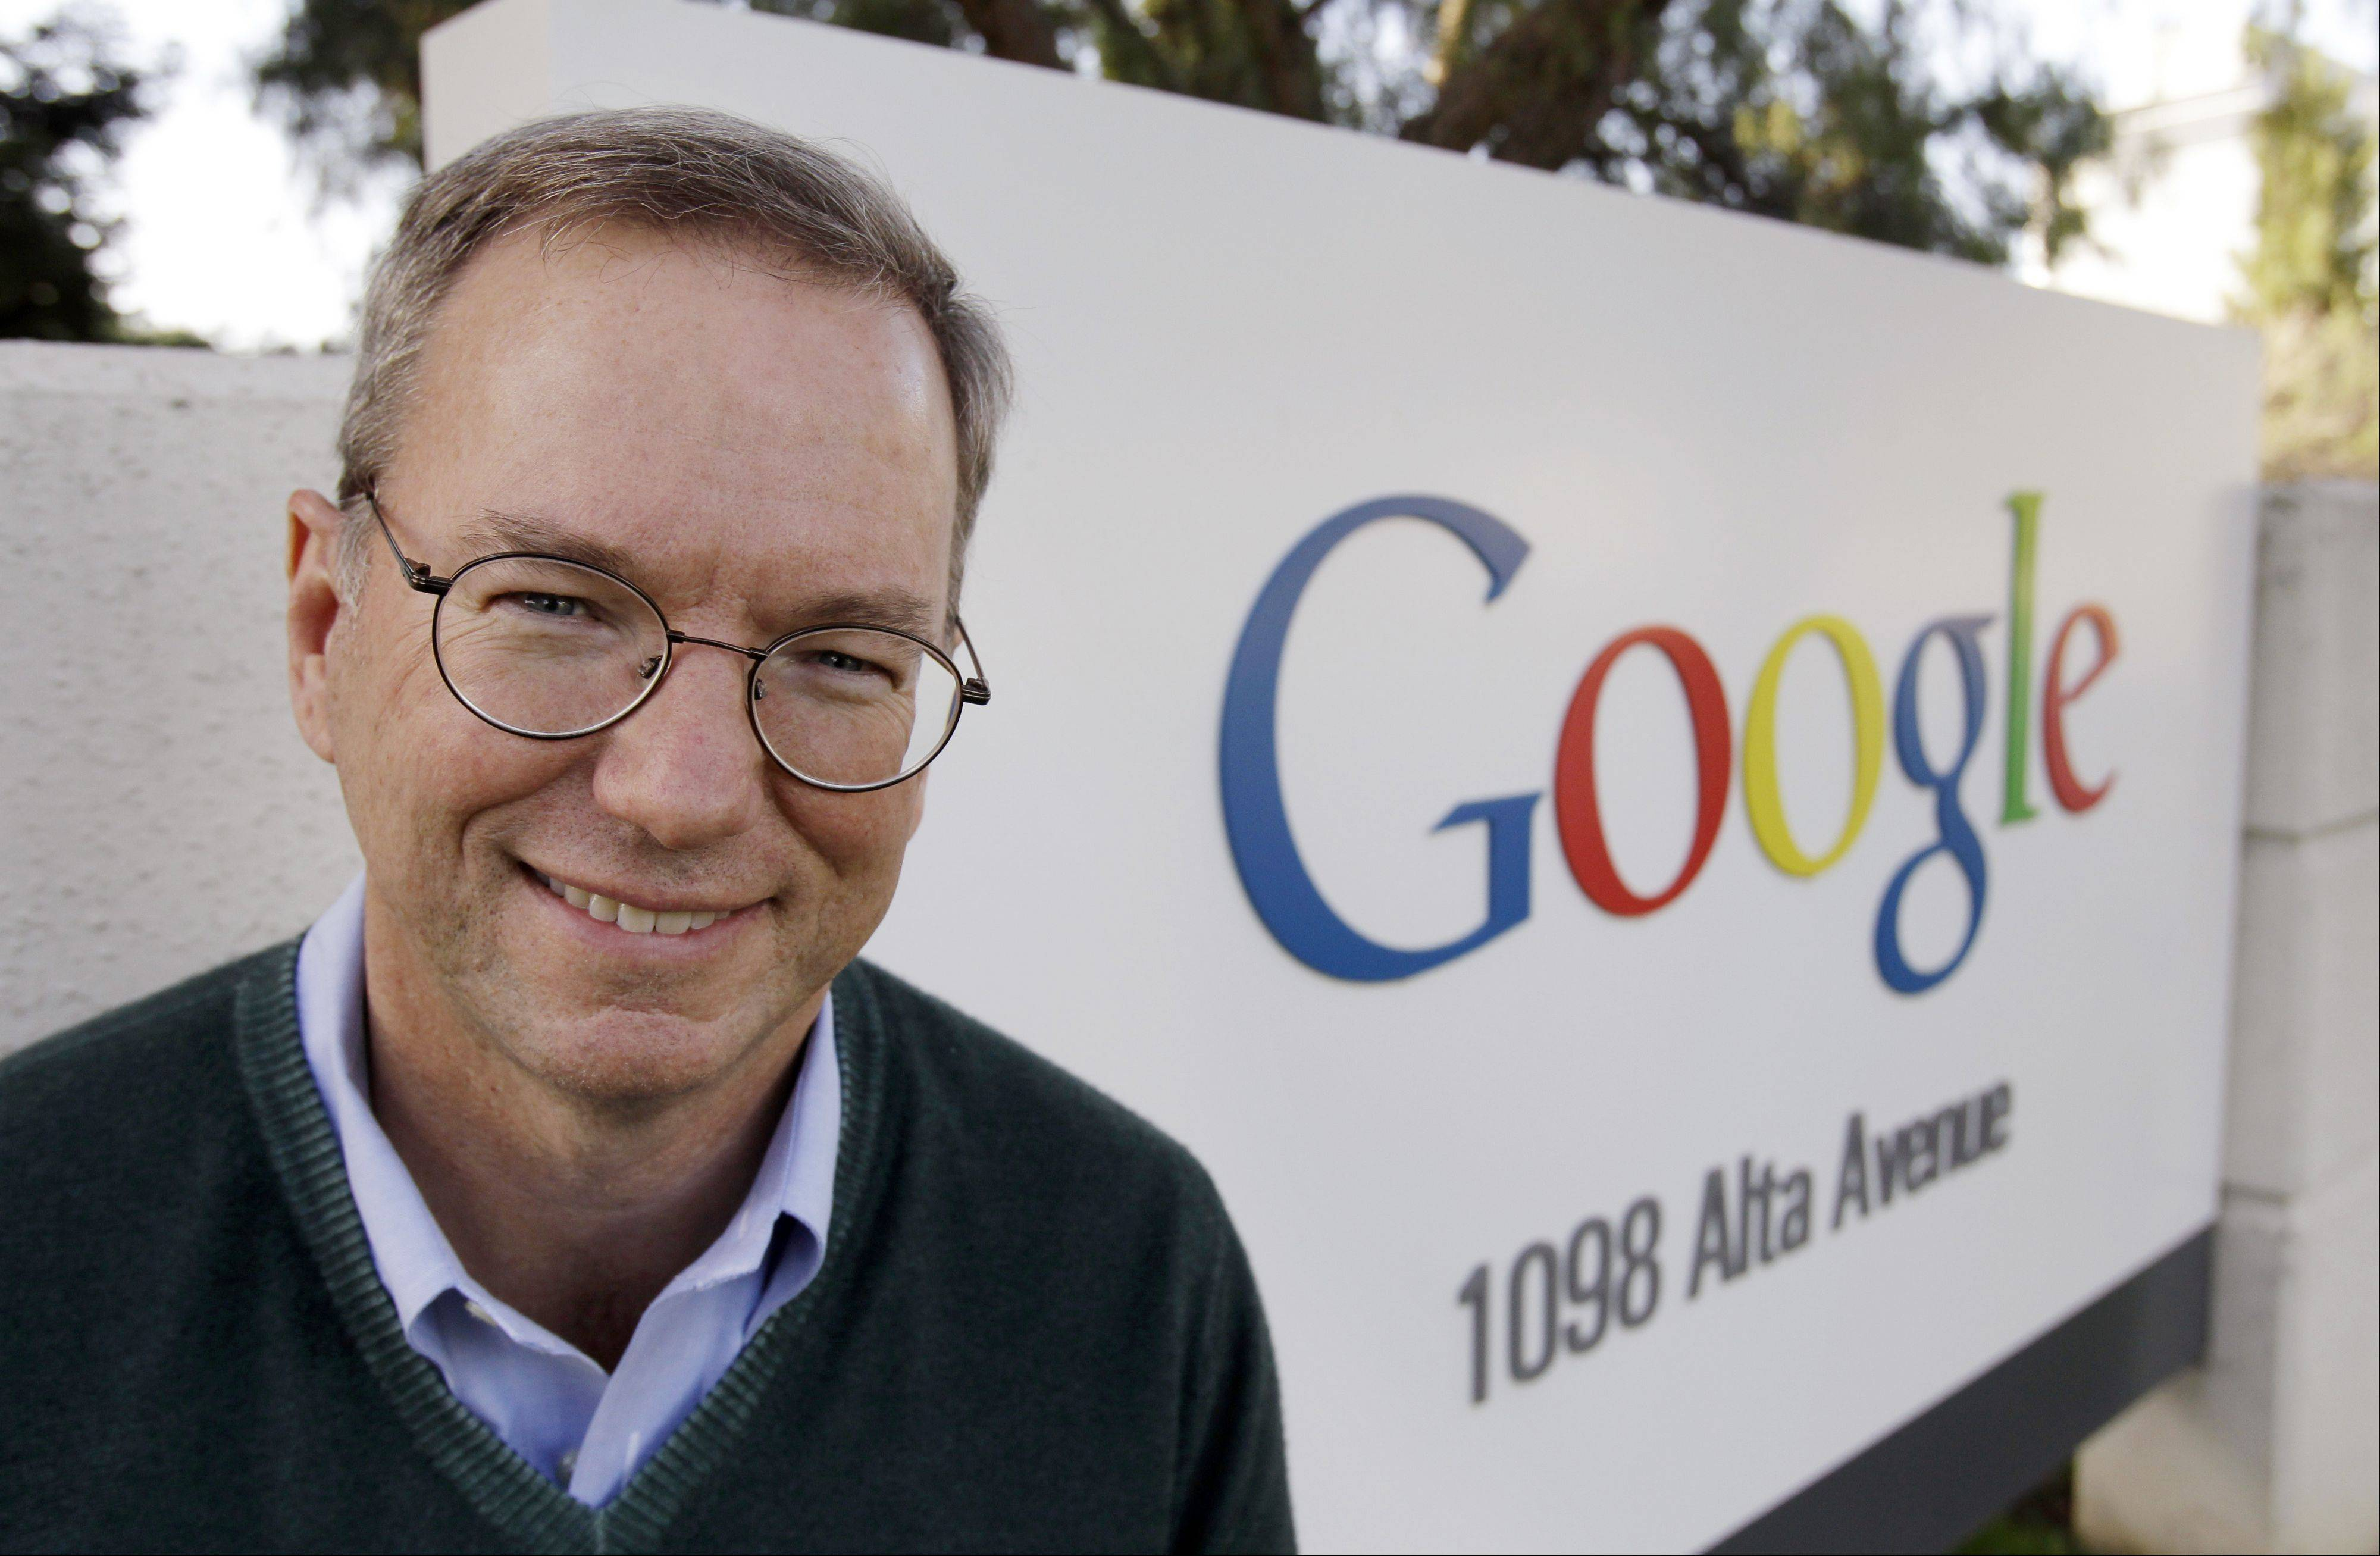 Google CEO Eric Schmidt outside of Google headquarters in Mountain View, Calif.